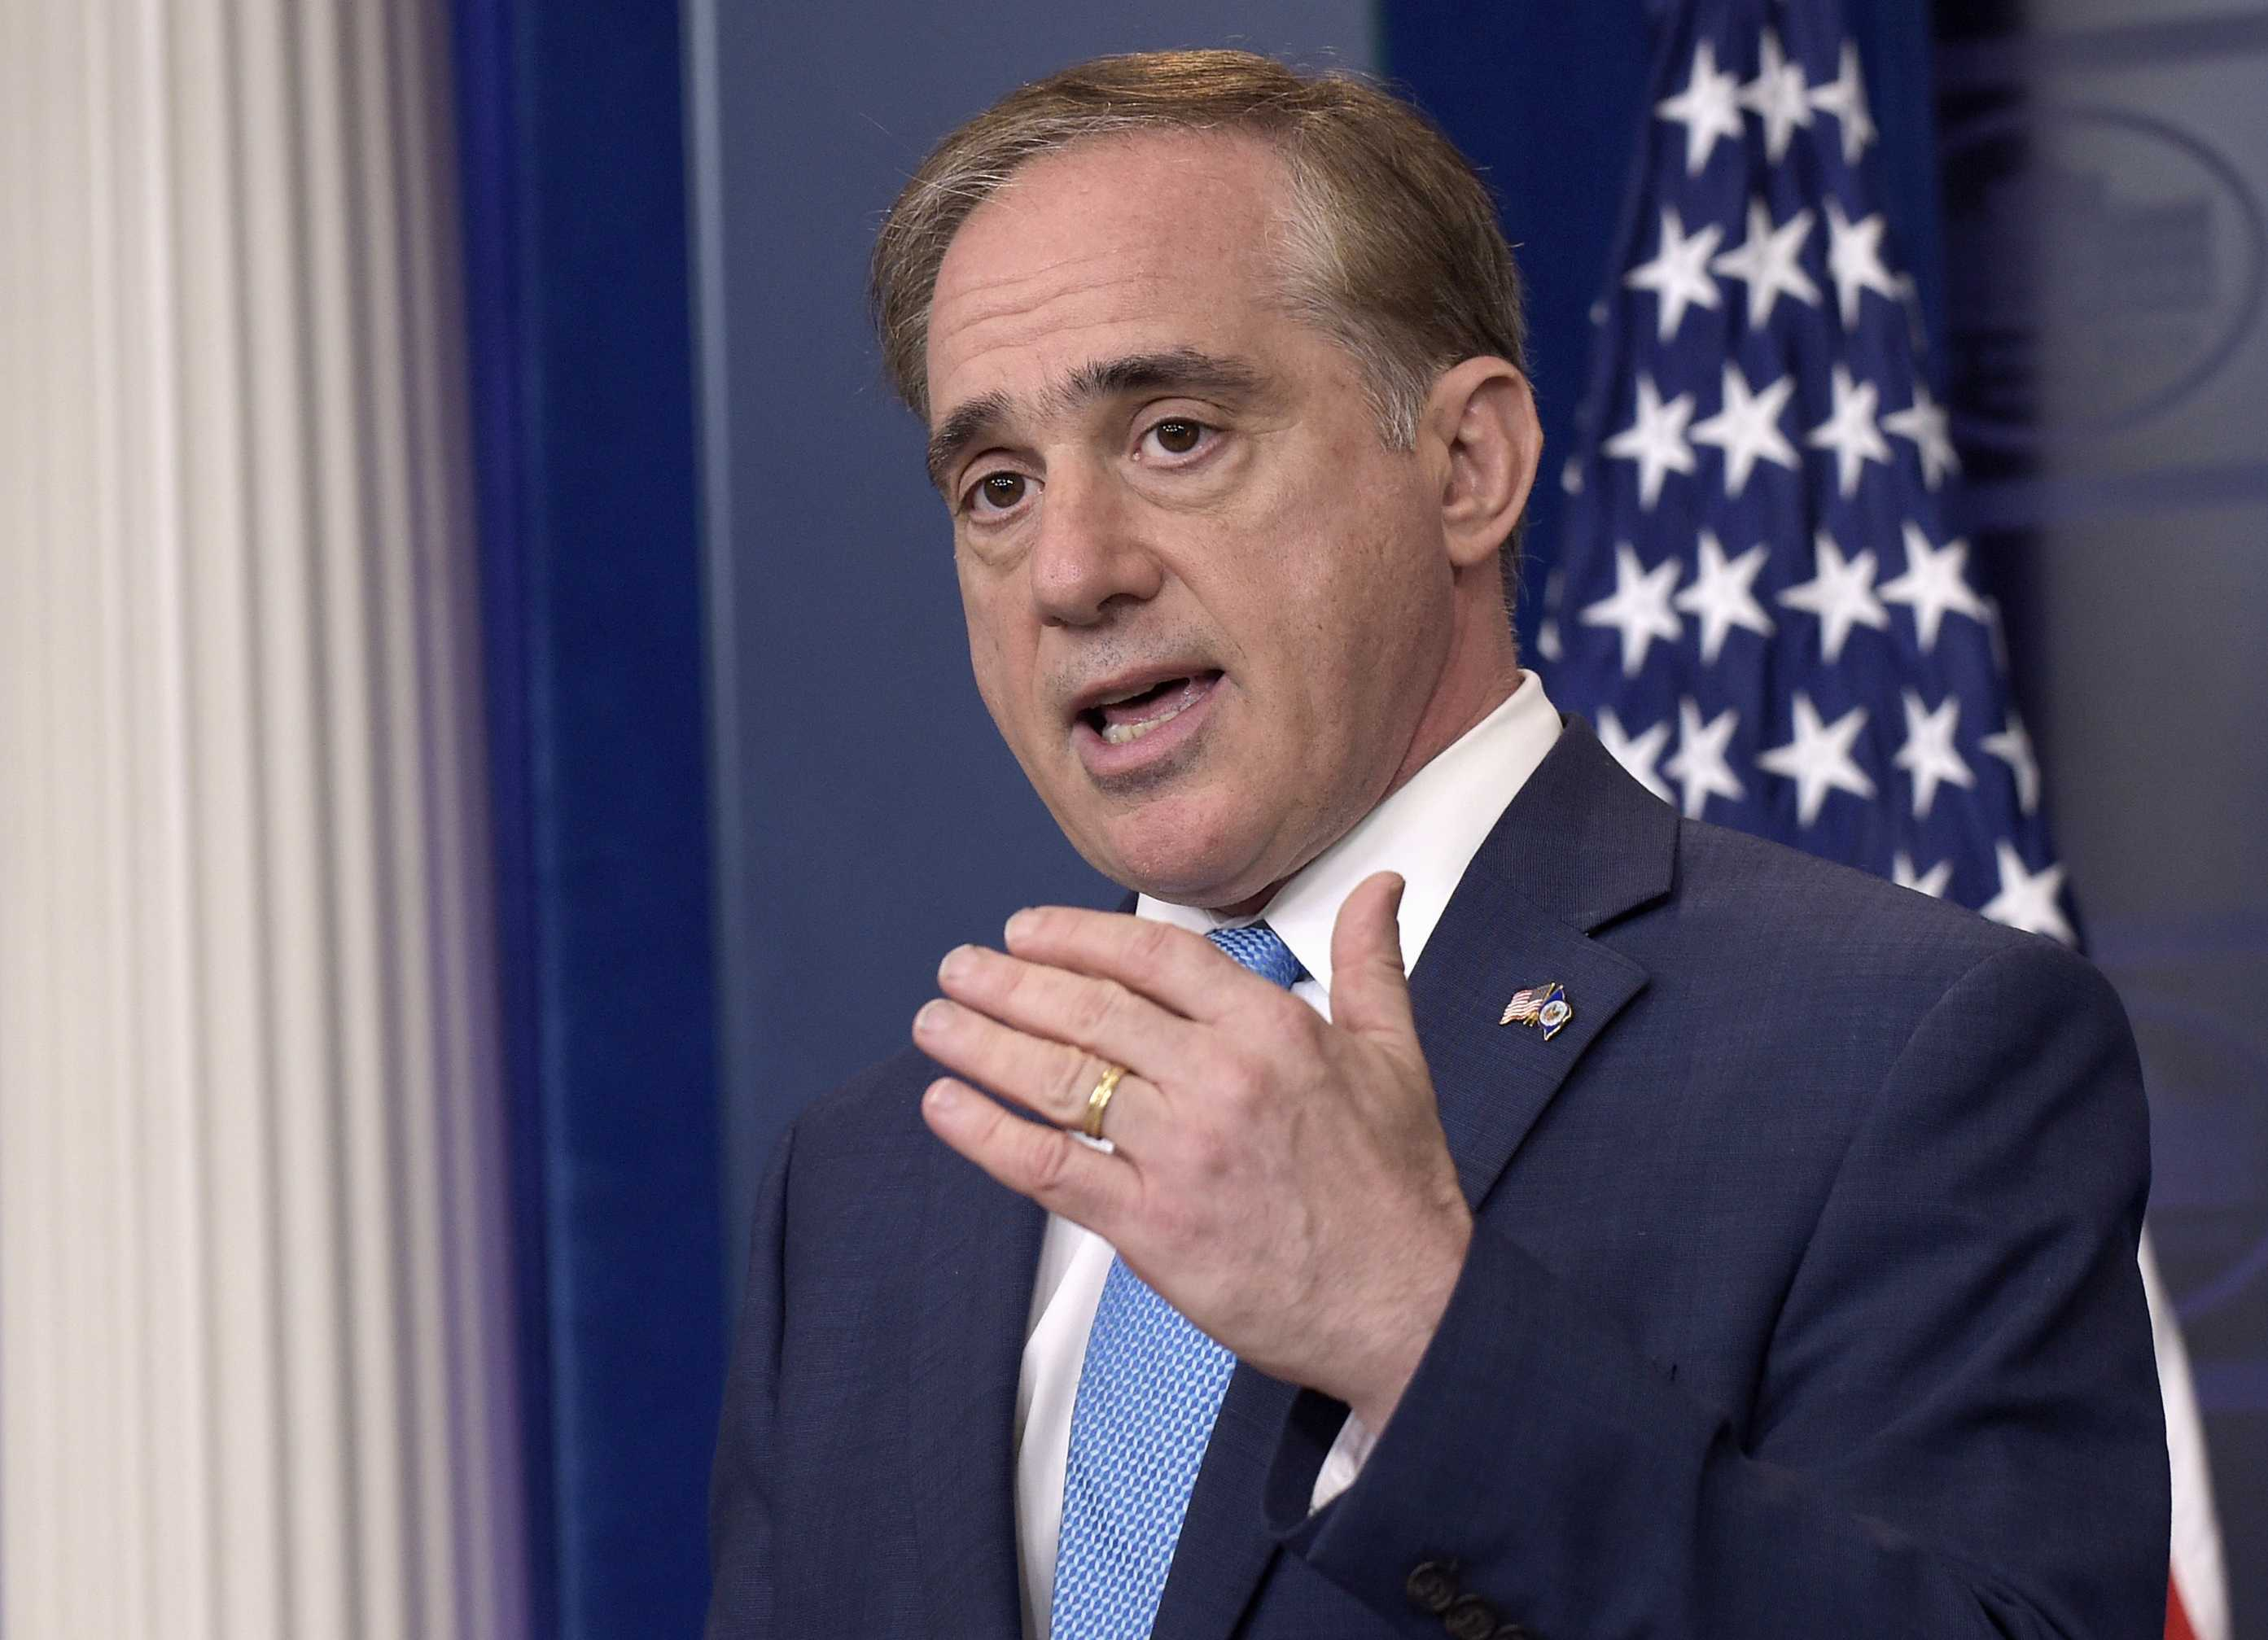 Highlights of the VA Report on David Shulkin's Trip to Europe